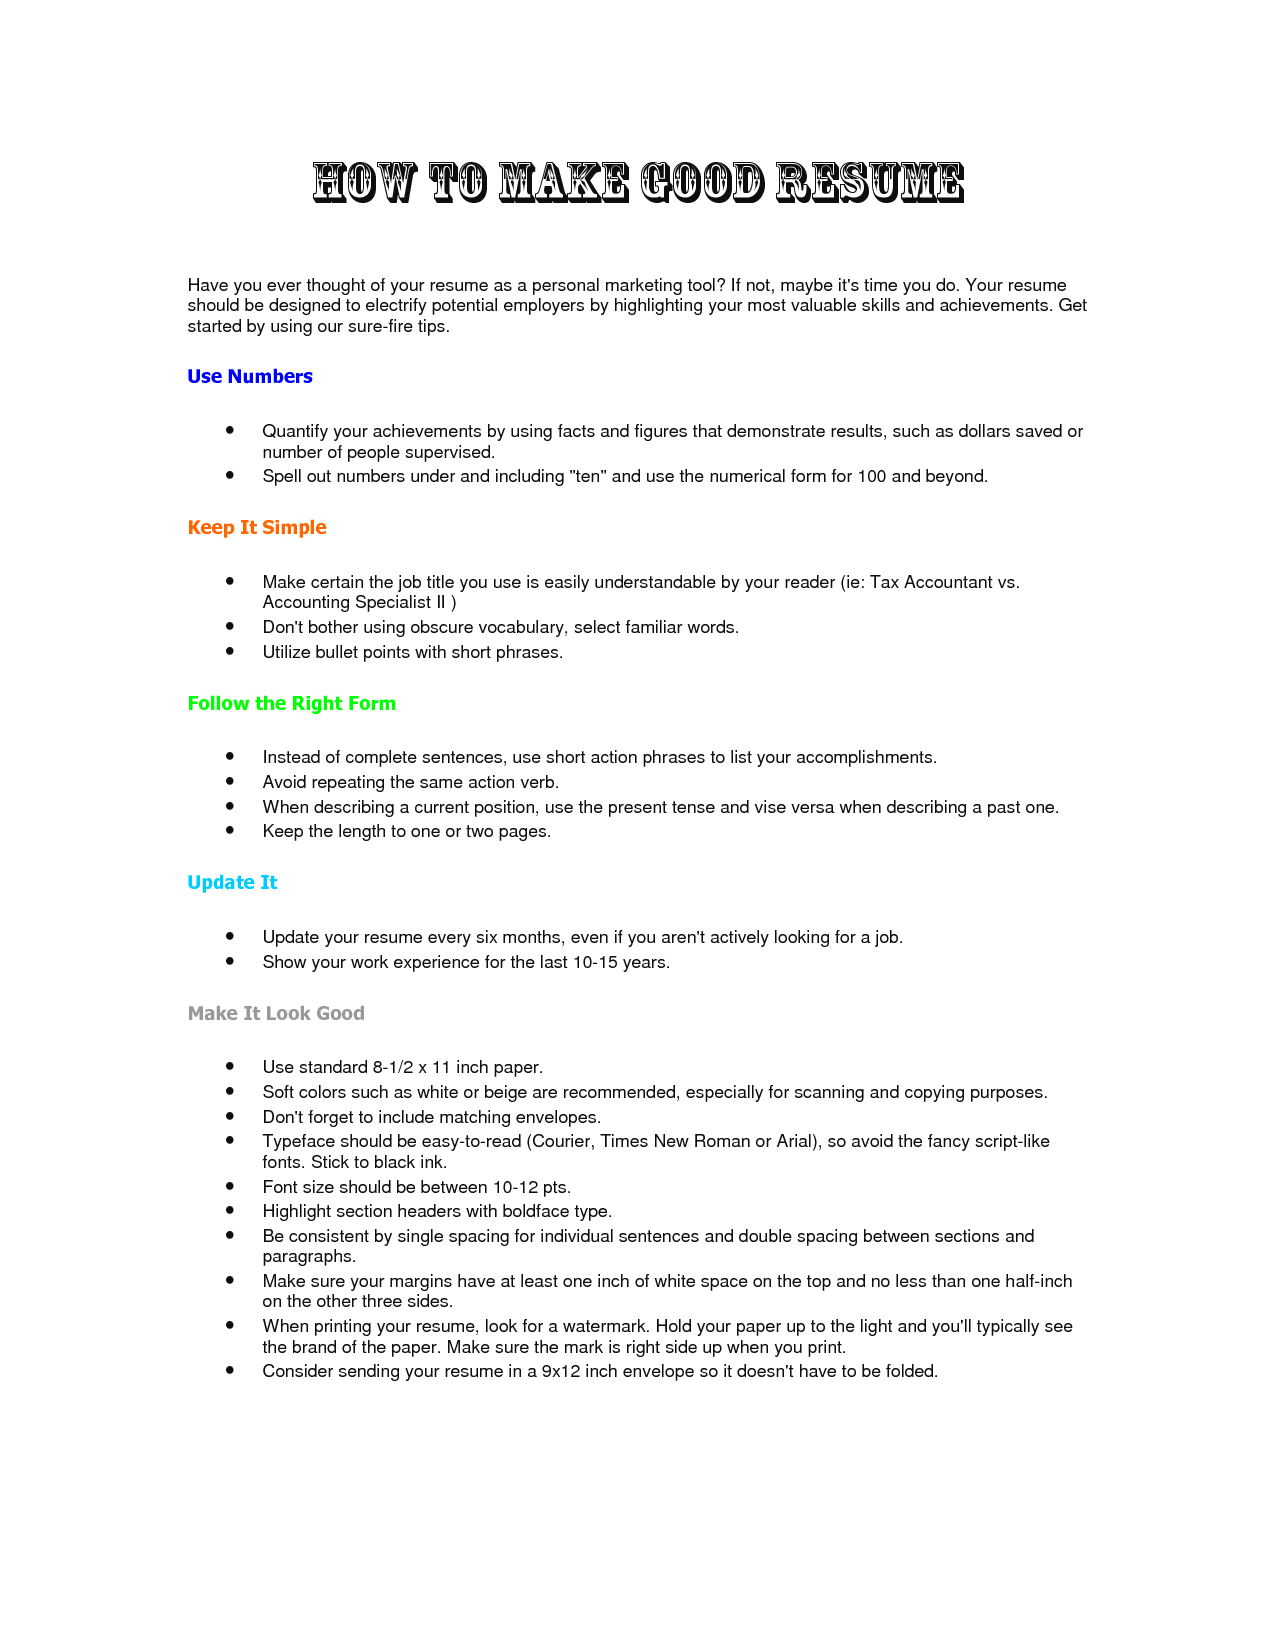 how to make your own resume getessay biz own no johns were hurt in